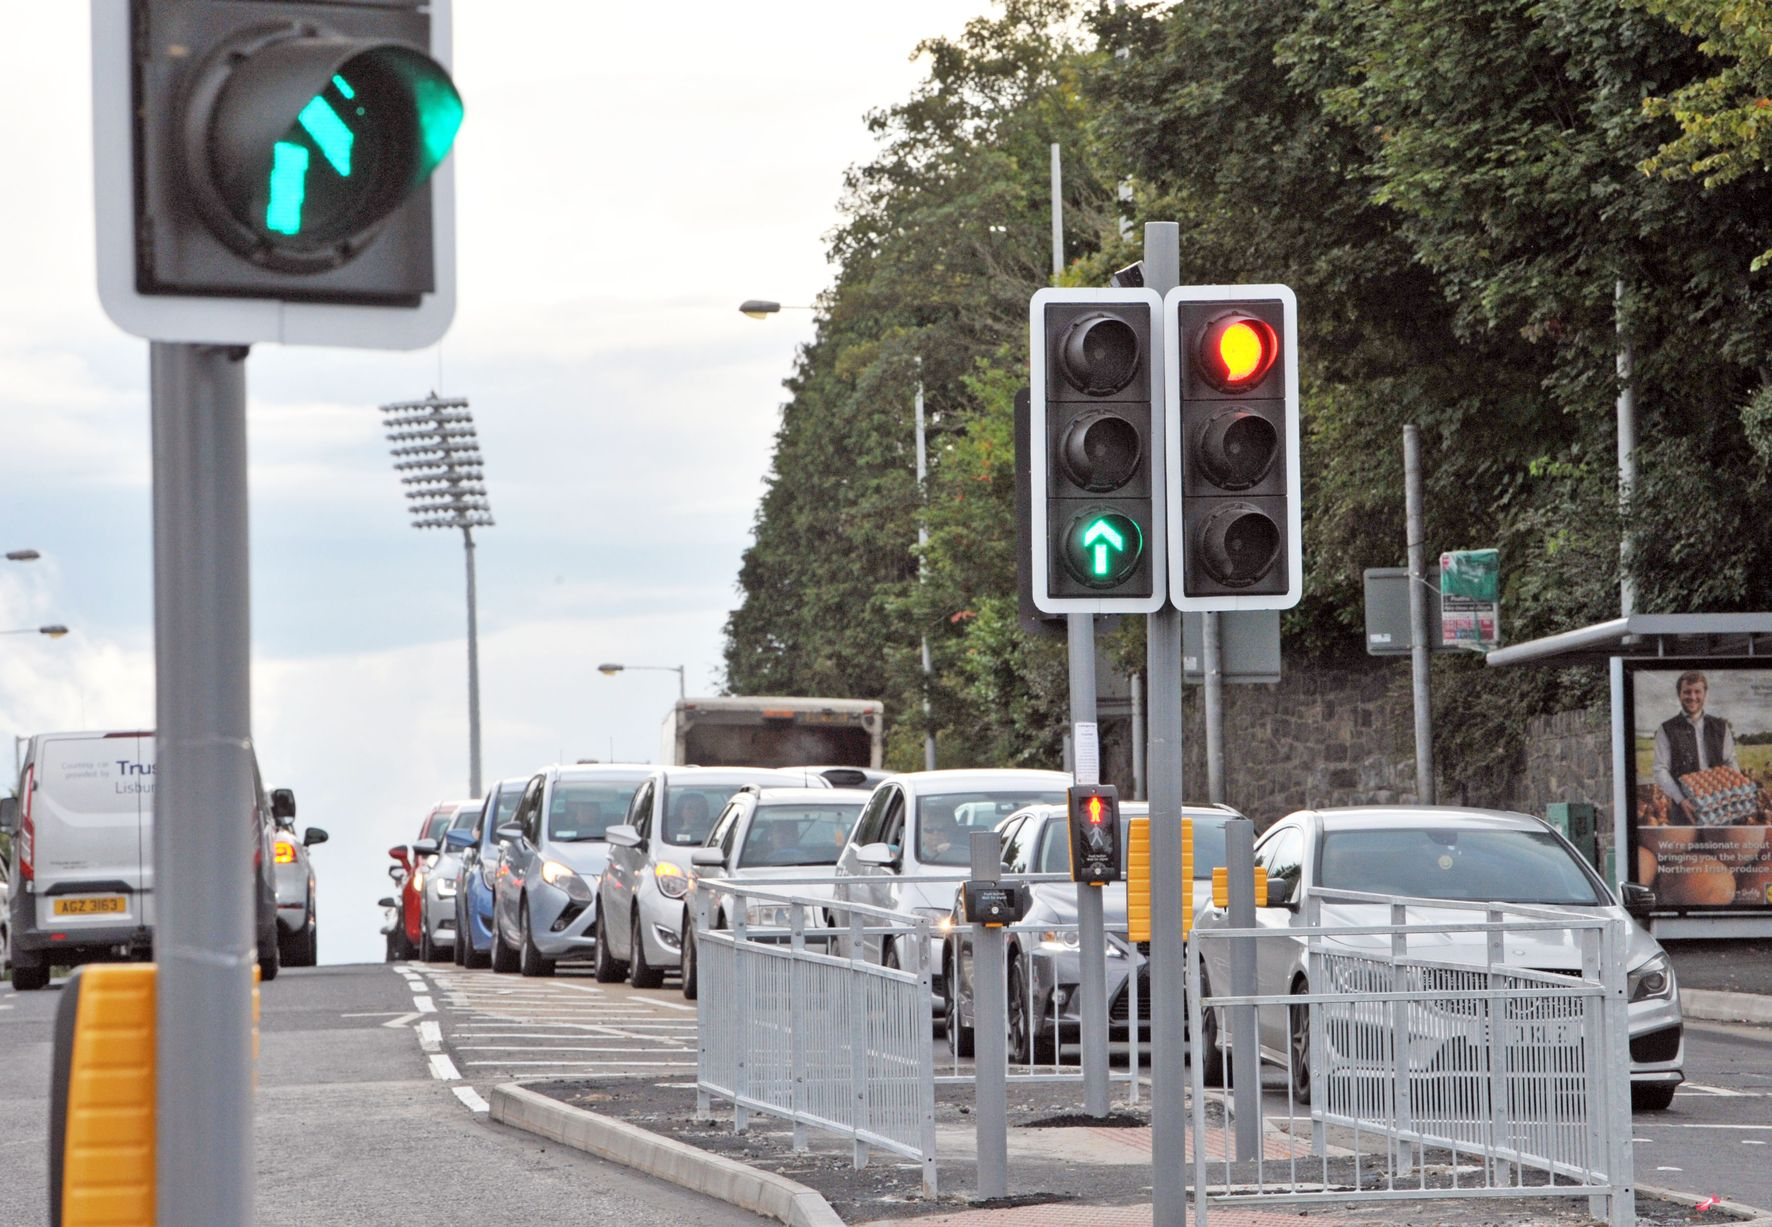 Kennedy Way Traffic Lights